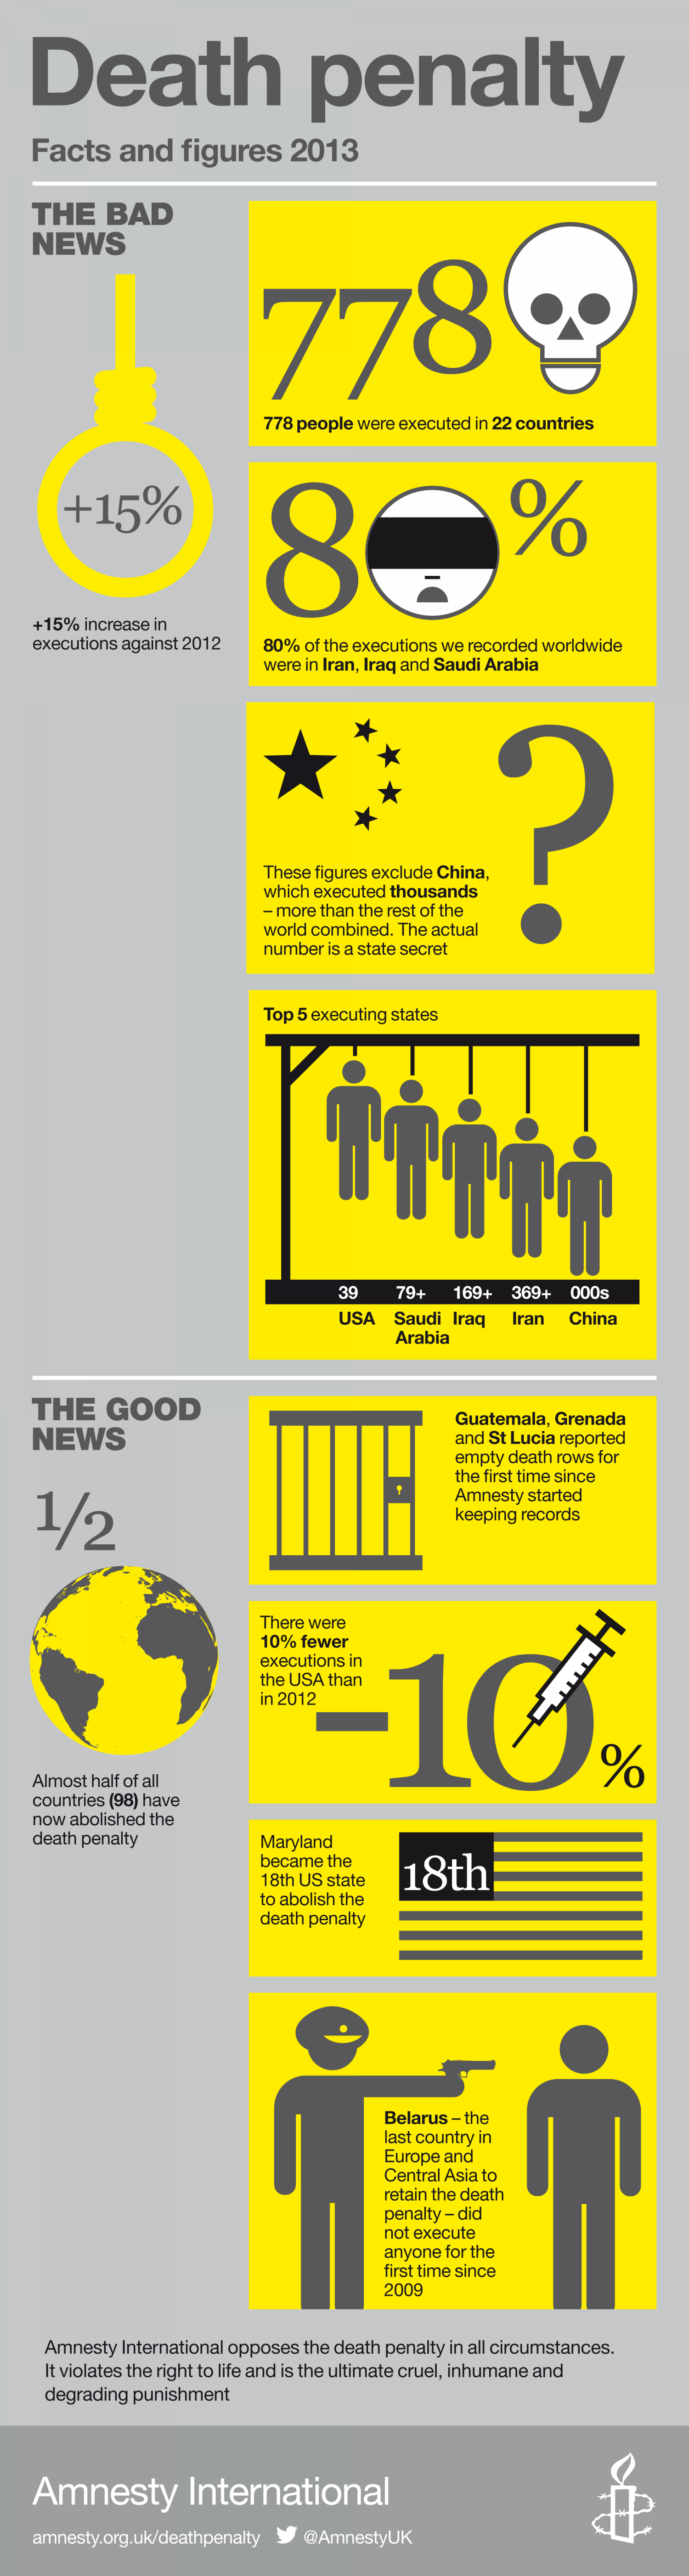 Death Penalty in 2013 Infographic